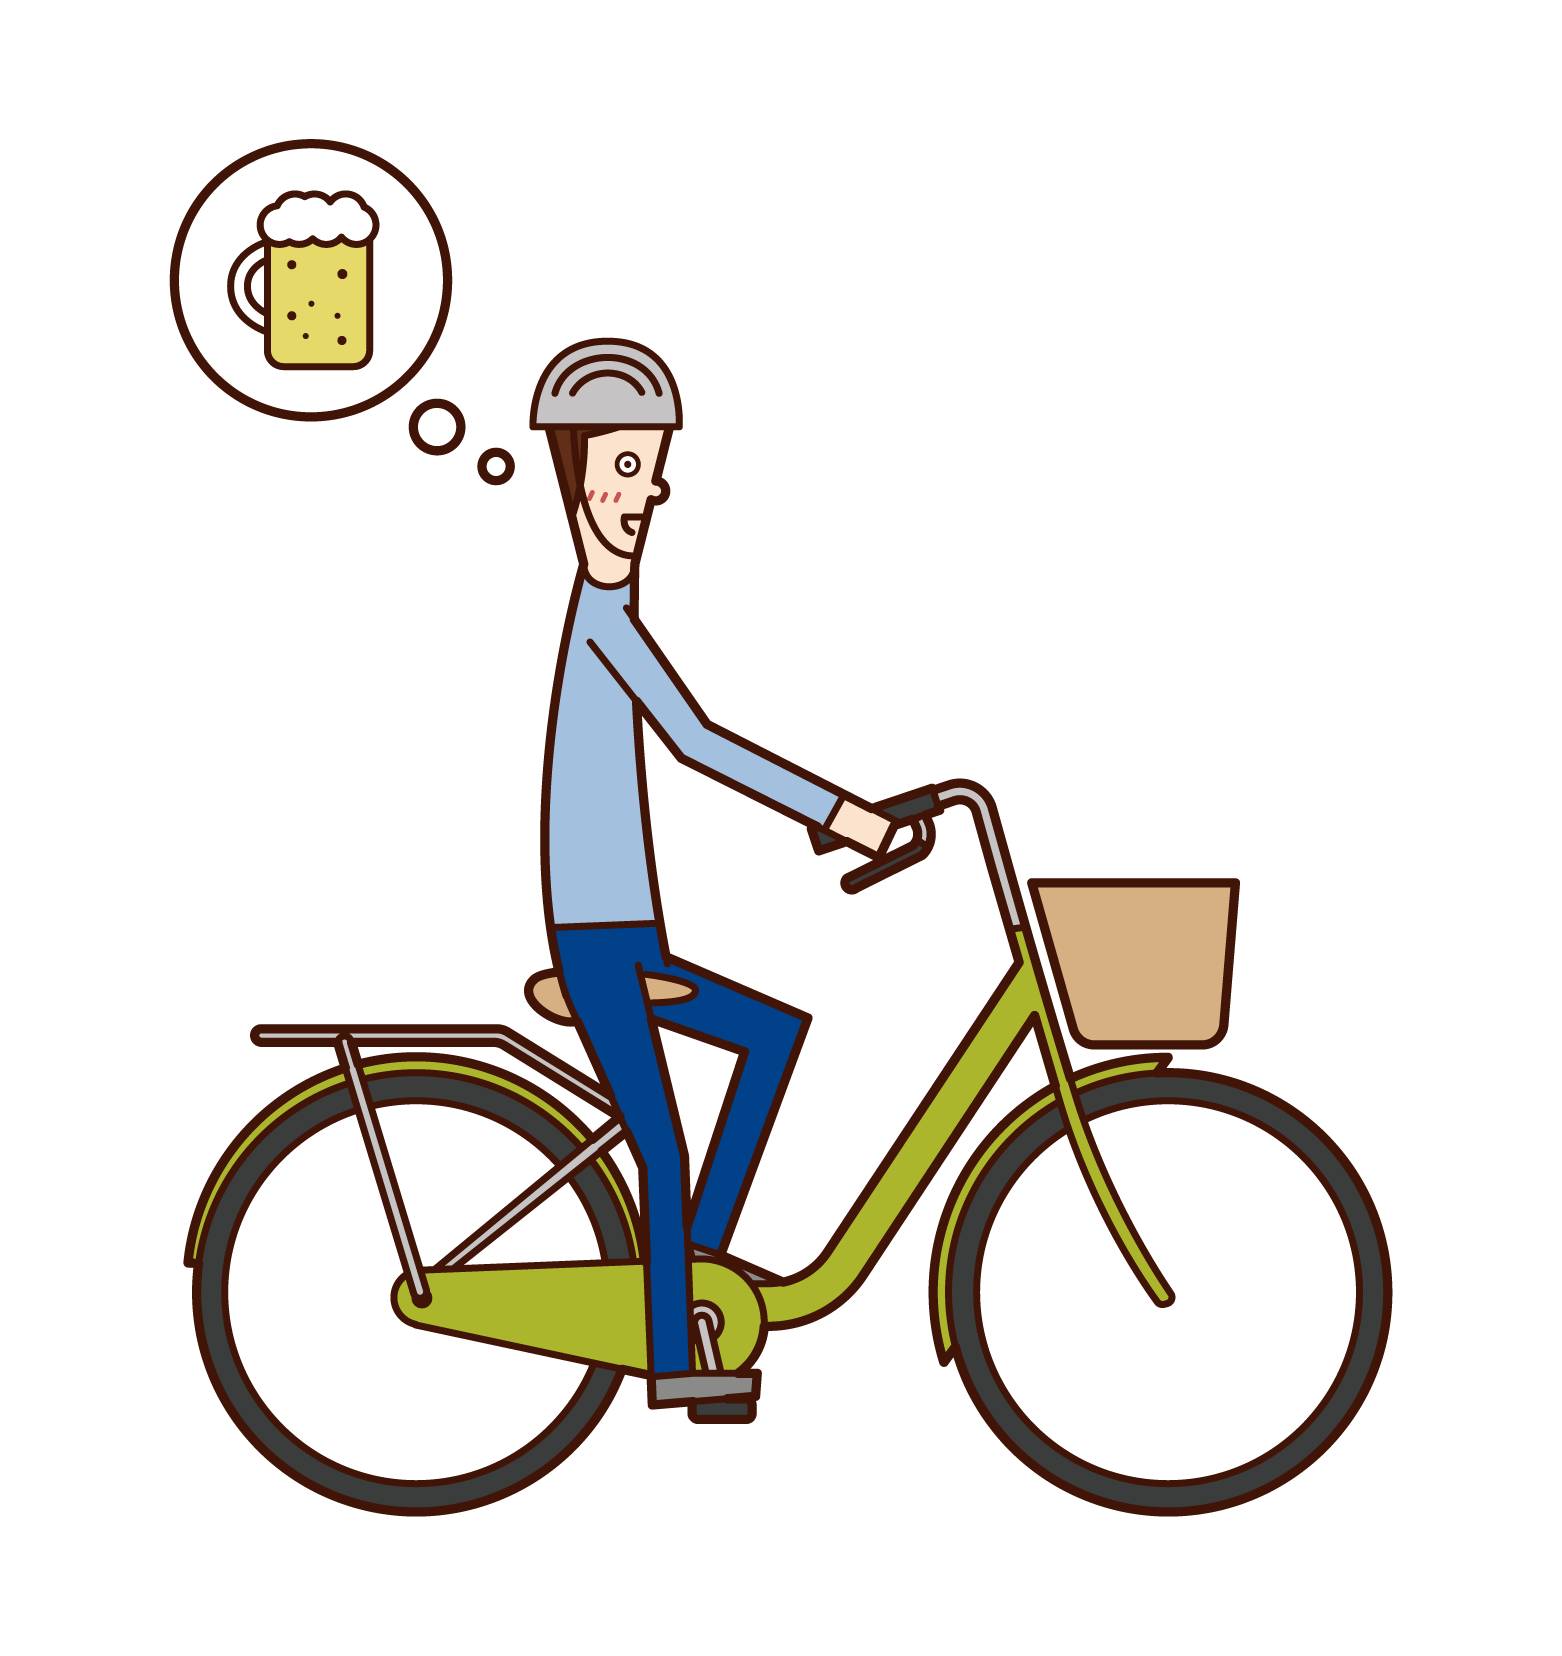 Illustration of a man who drinks and drinks on a bicycle